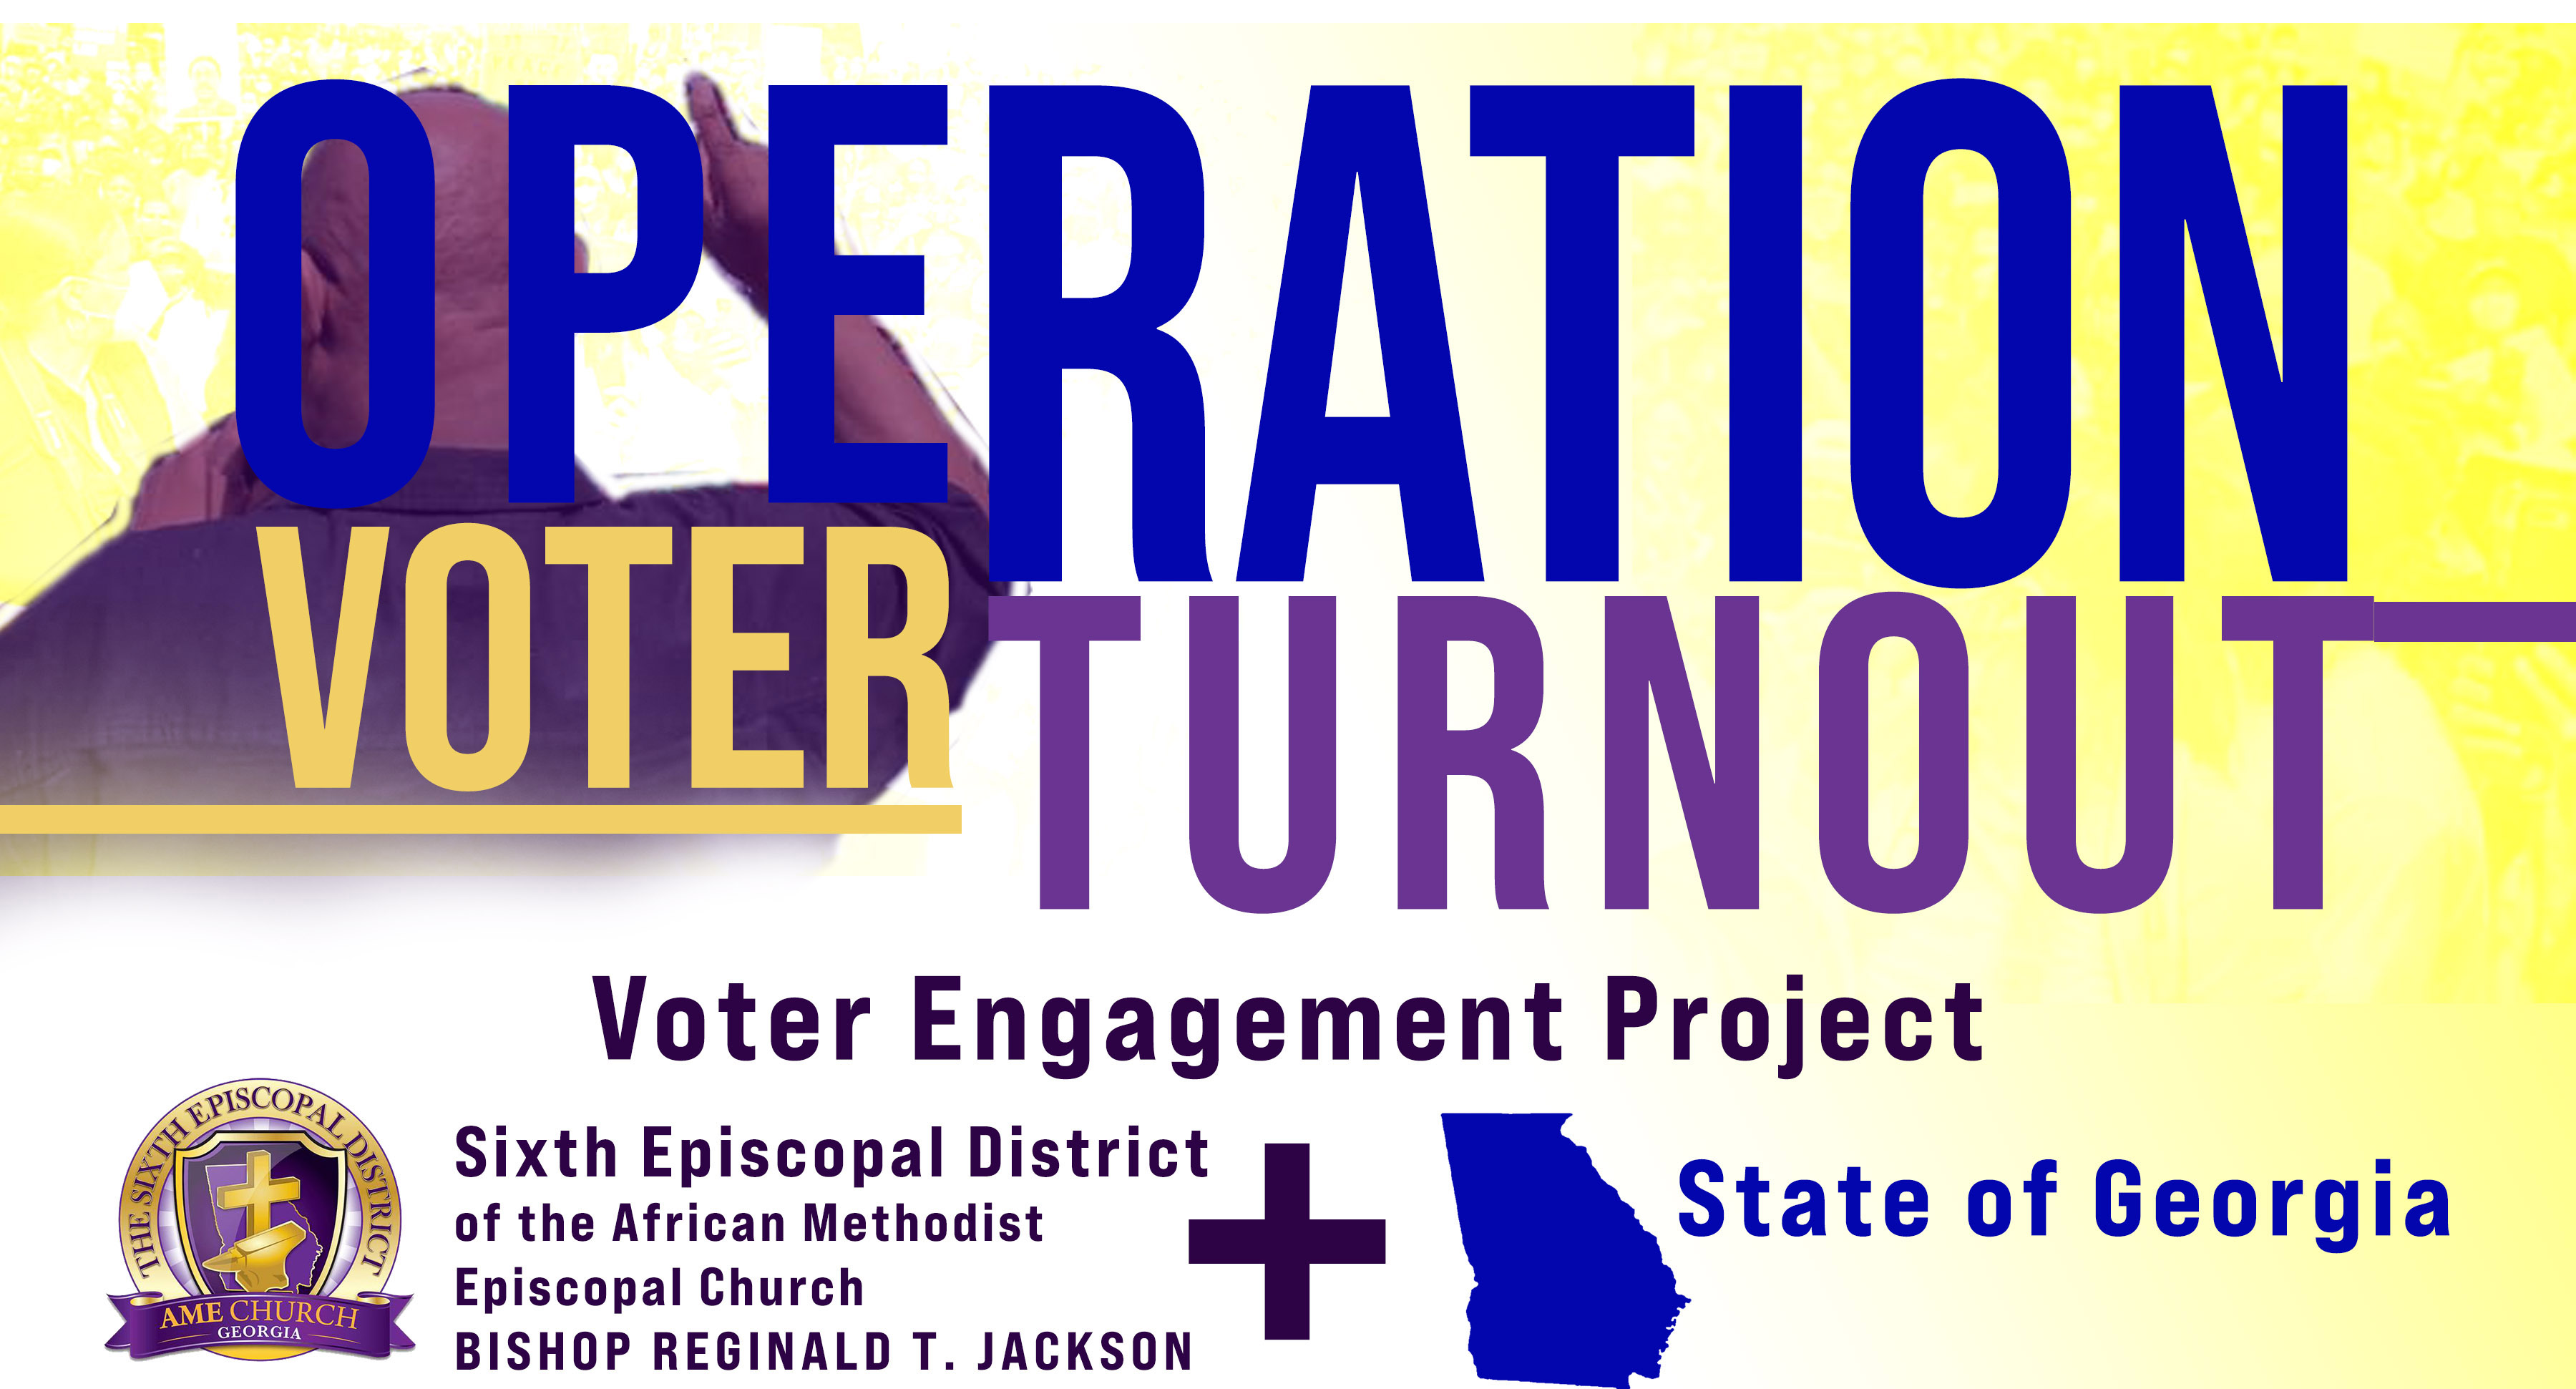 Operation Voter Turnout